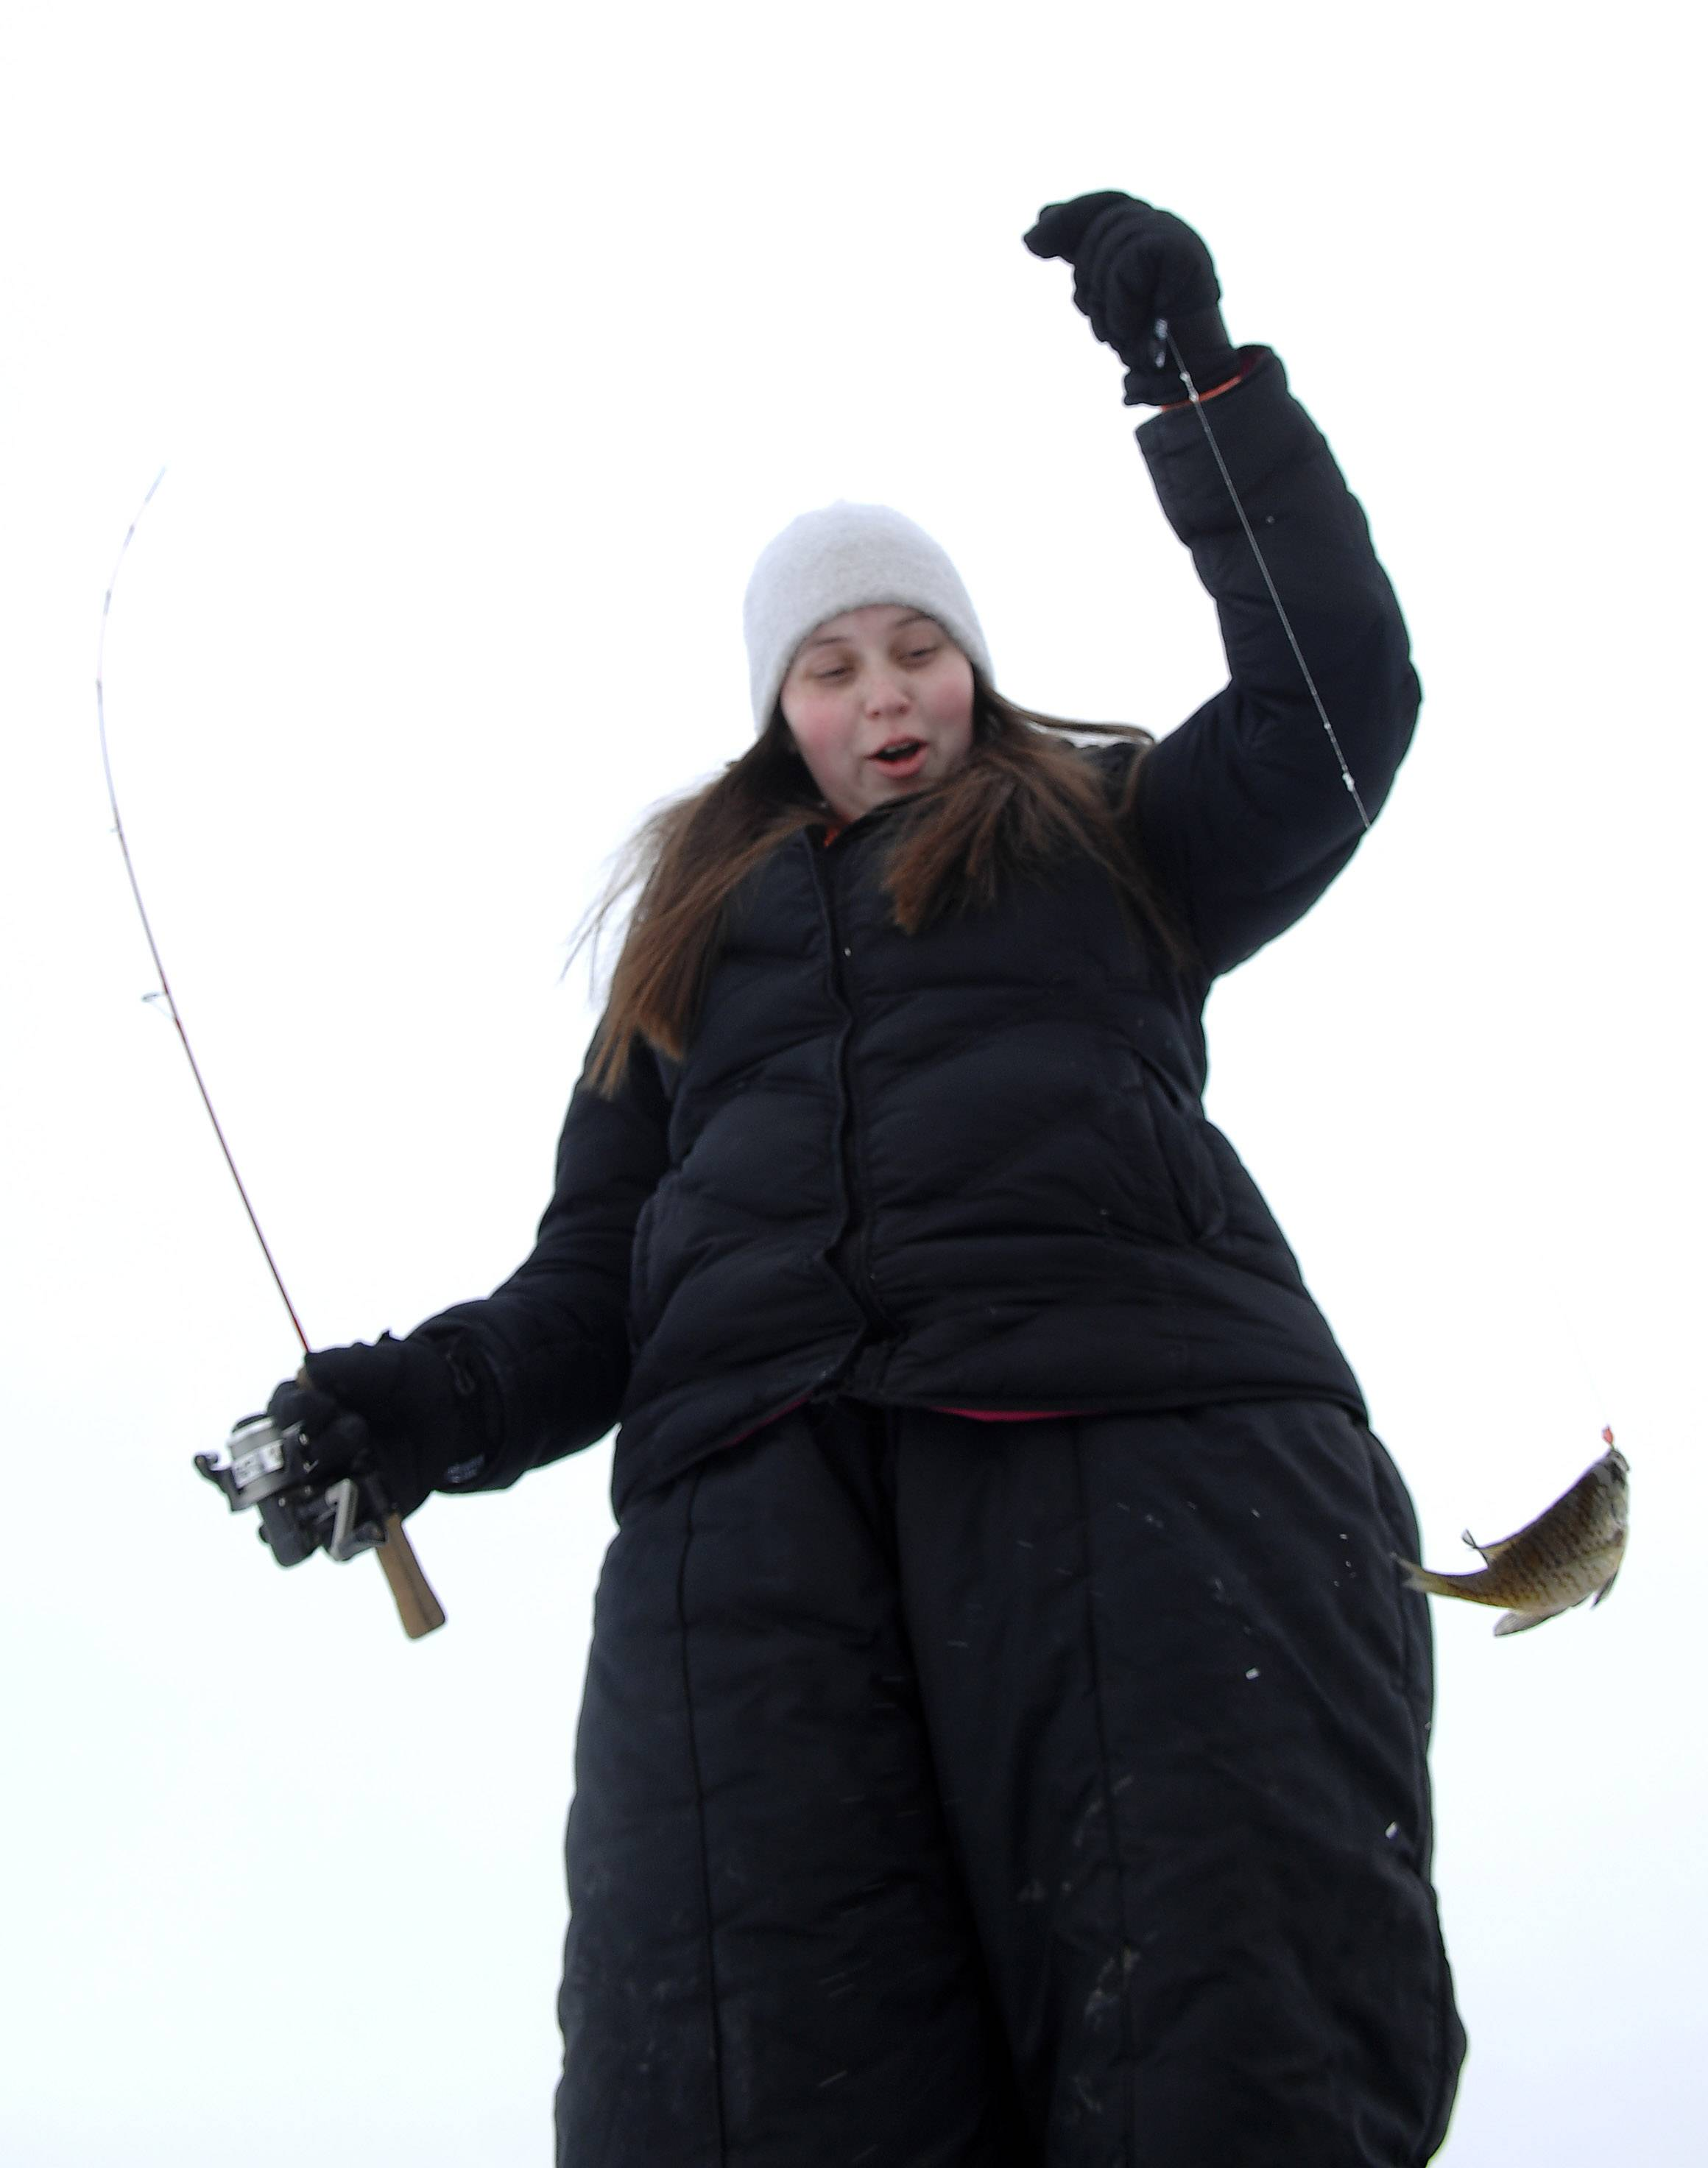 Noel Hoger, 17, of Algonquin pulls in a little bluegill while ice fishing at Lake Atwood in The Hollows Conservation Area during a park district-sponsored event in Cary Saturday. Aside from making holes and providing poles, the park district also shared tips for safe ice fishing.